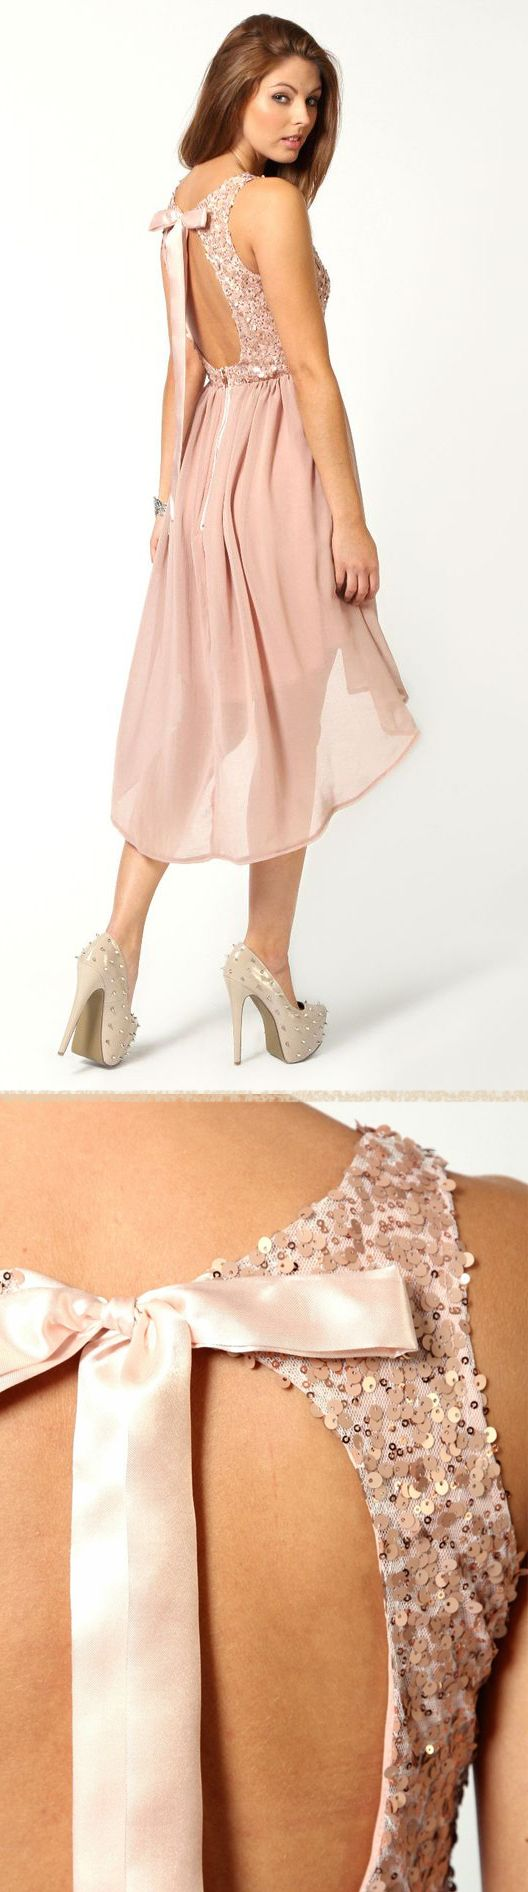 "pale pink ""going out"" dress with sequins and a satin bow in the back!"